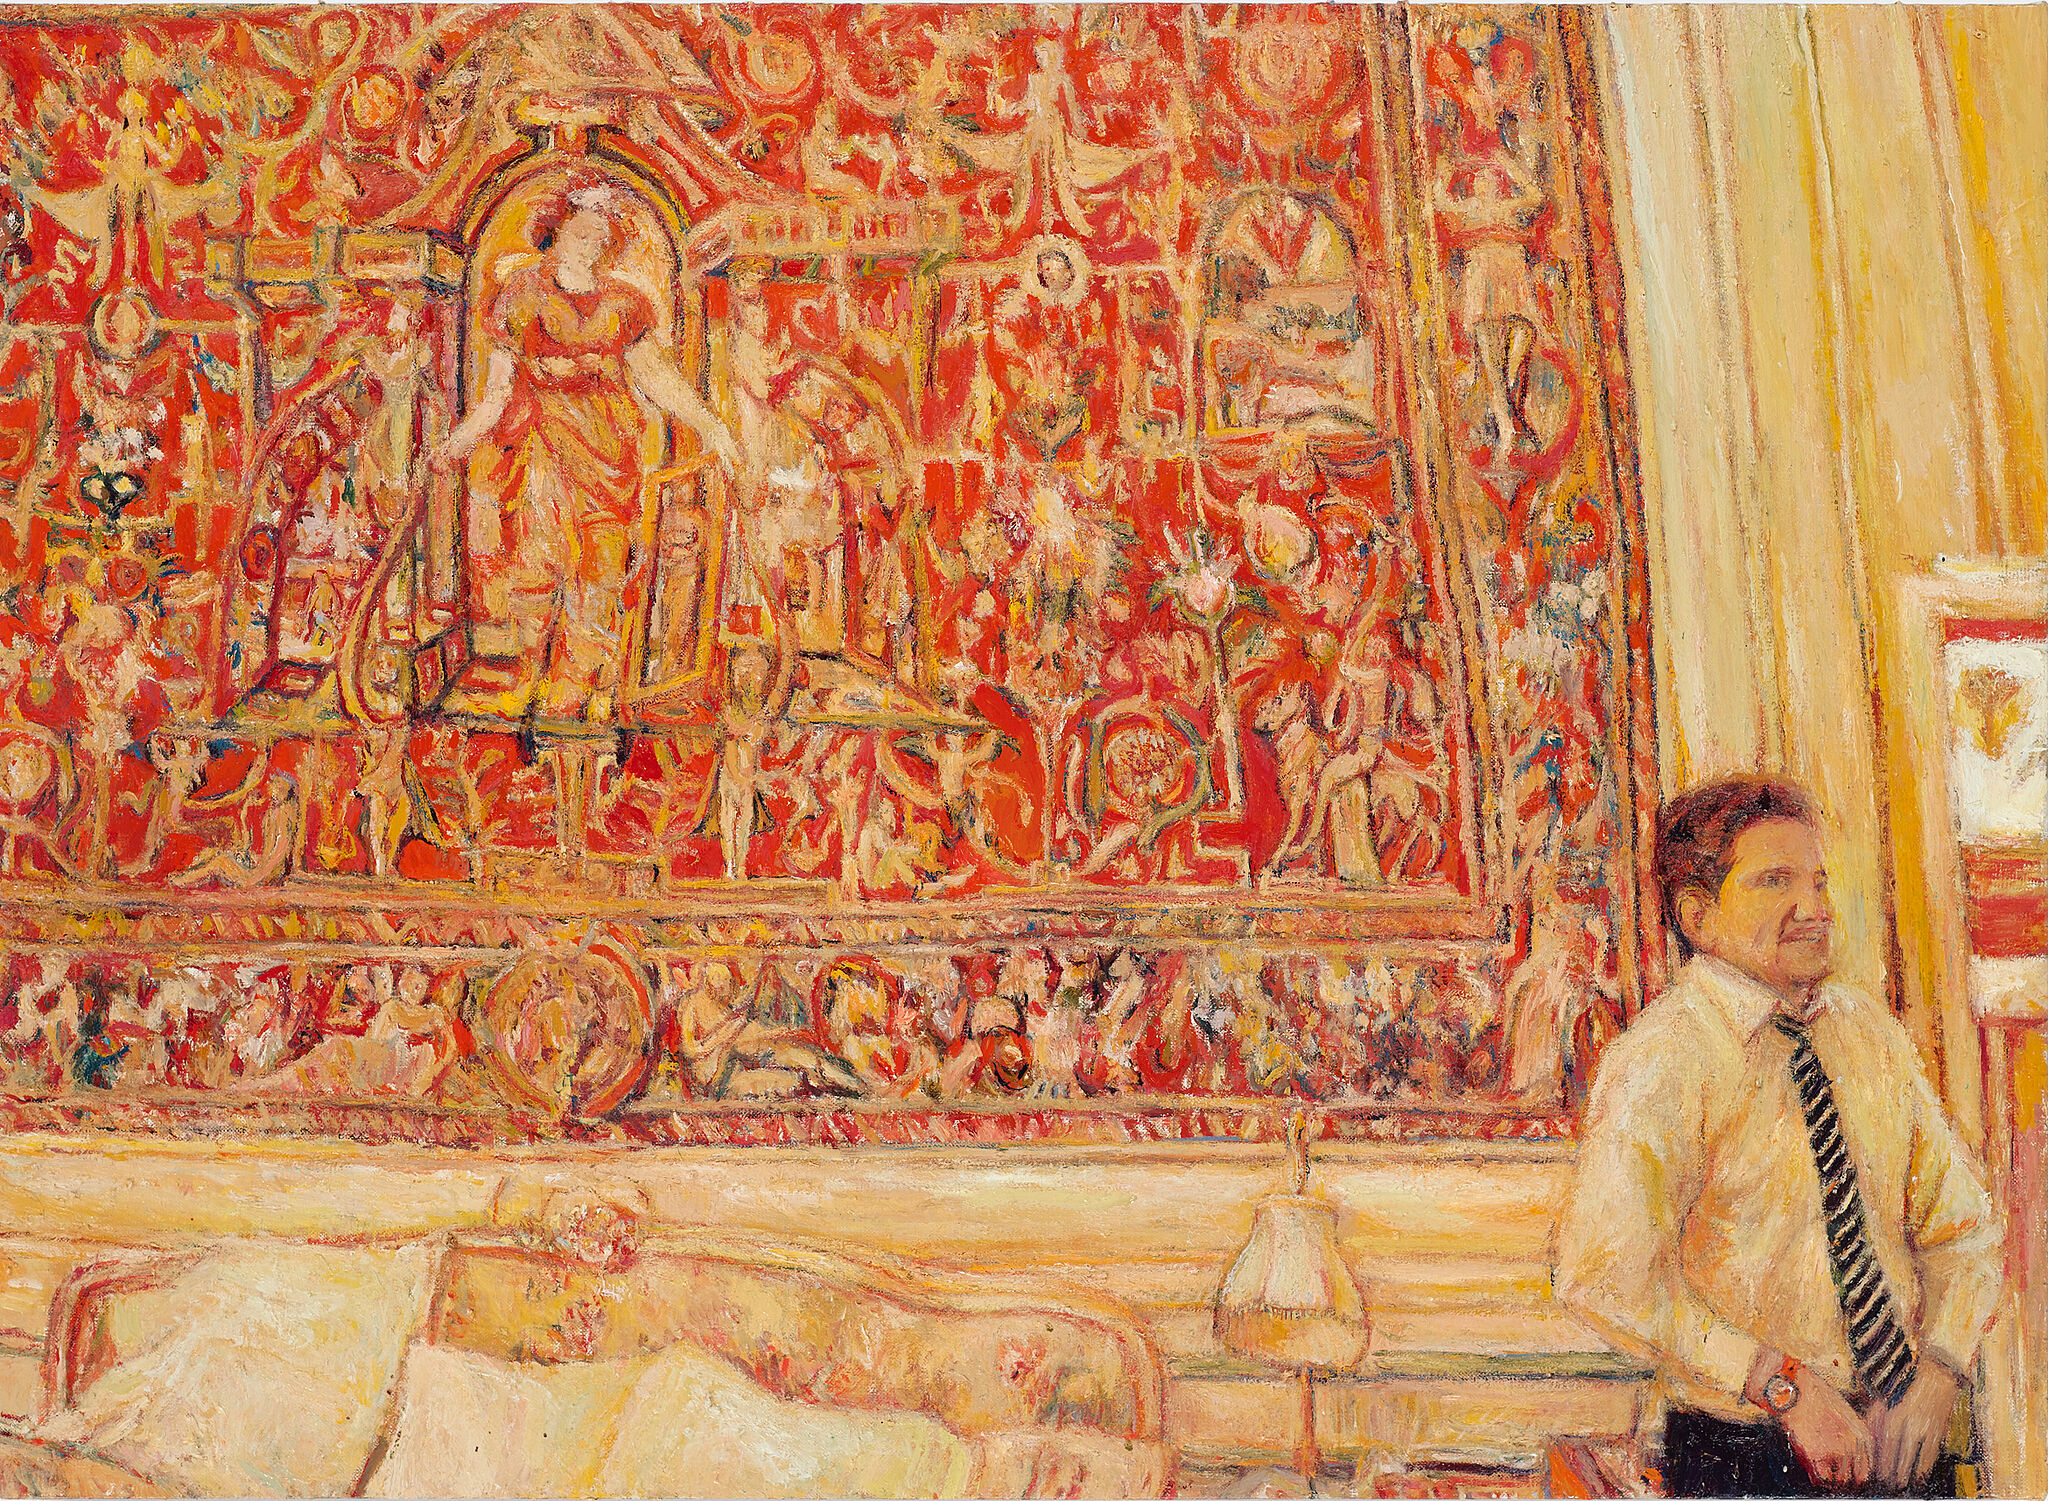 A painting of a man standing next to a bed.